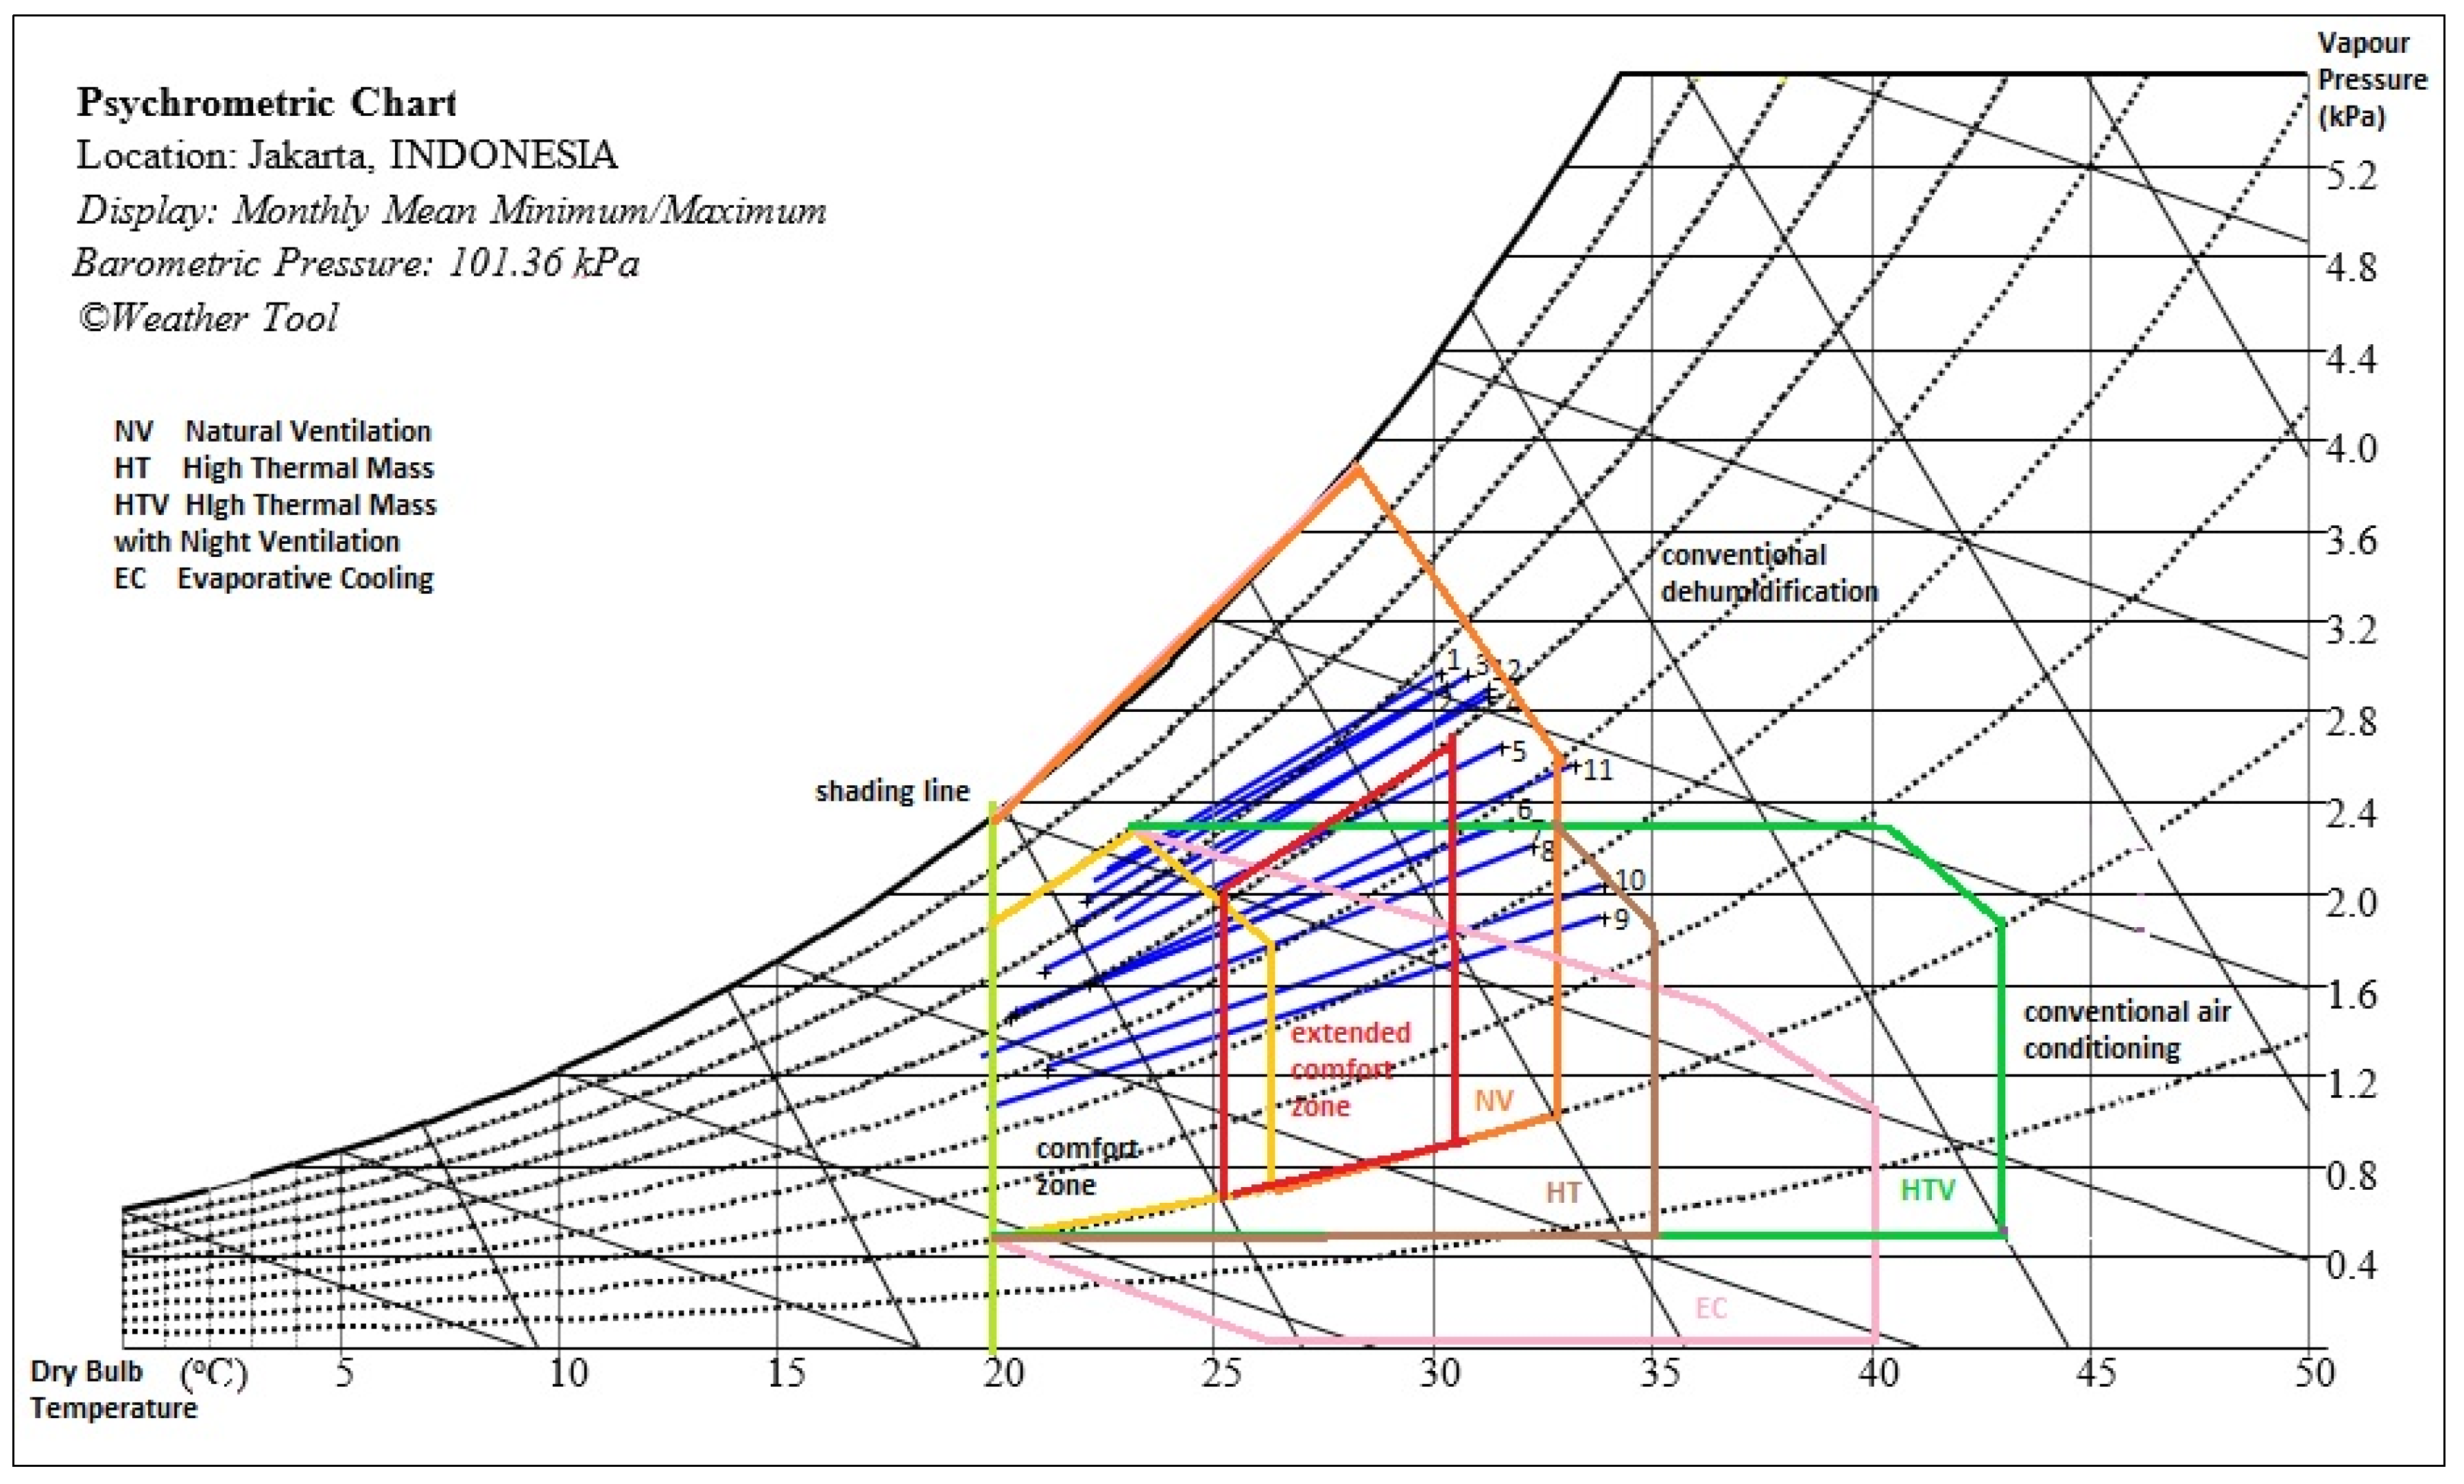 Buildings Free Full Text Bioclimatic Analysis In Predesign Diagram 7 Below 6 Layout For Roof Level 07 00024 G005